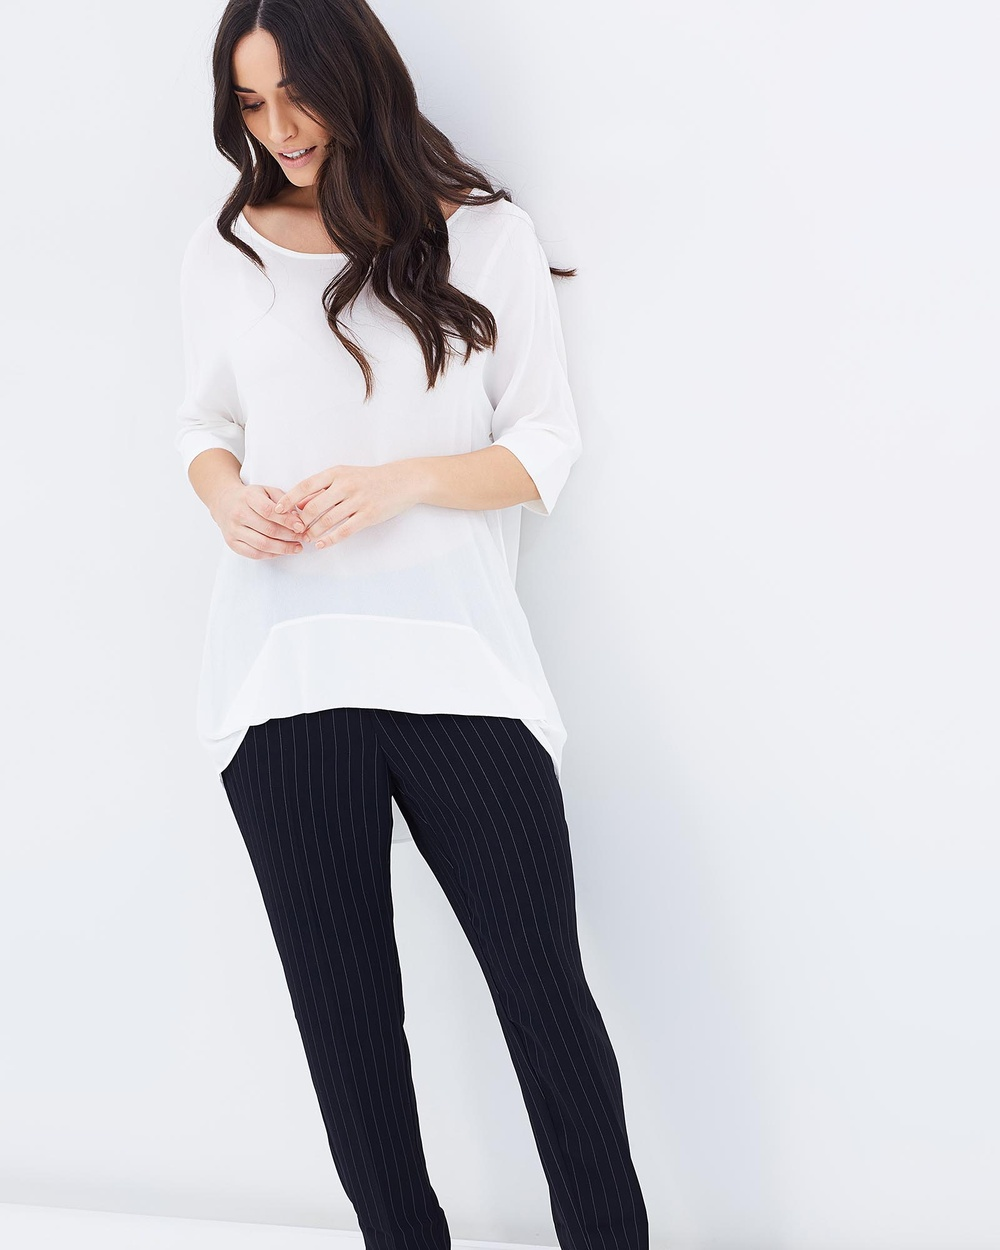 Faye Black Label Mila Tuck Stitch Top Tops Oyster Mila Tuck Stitch Top